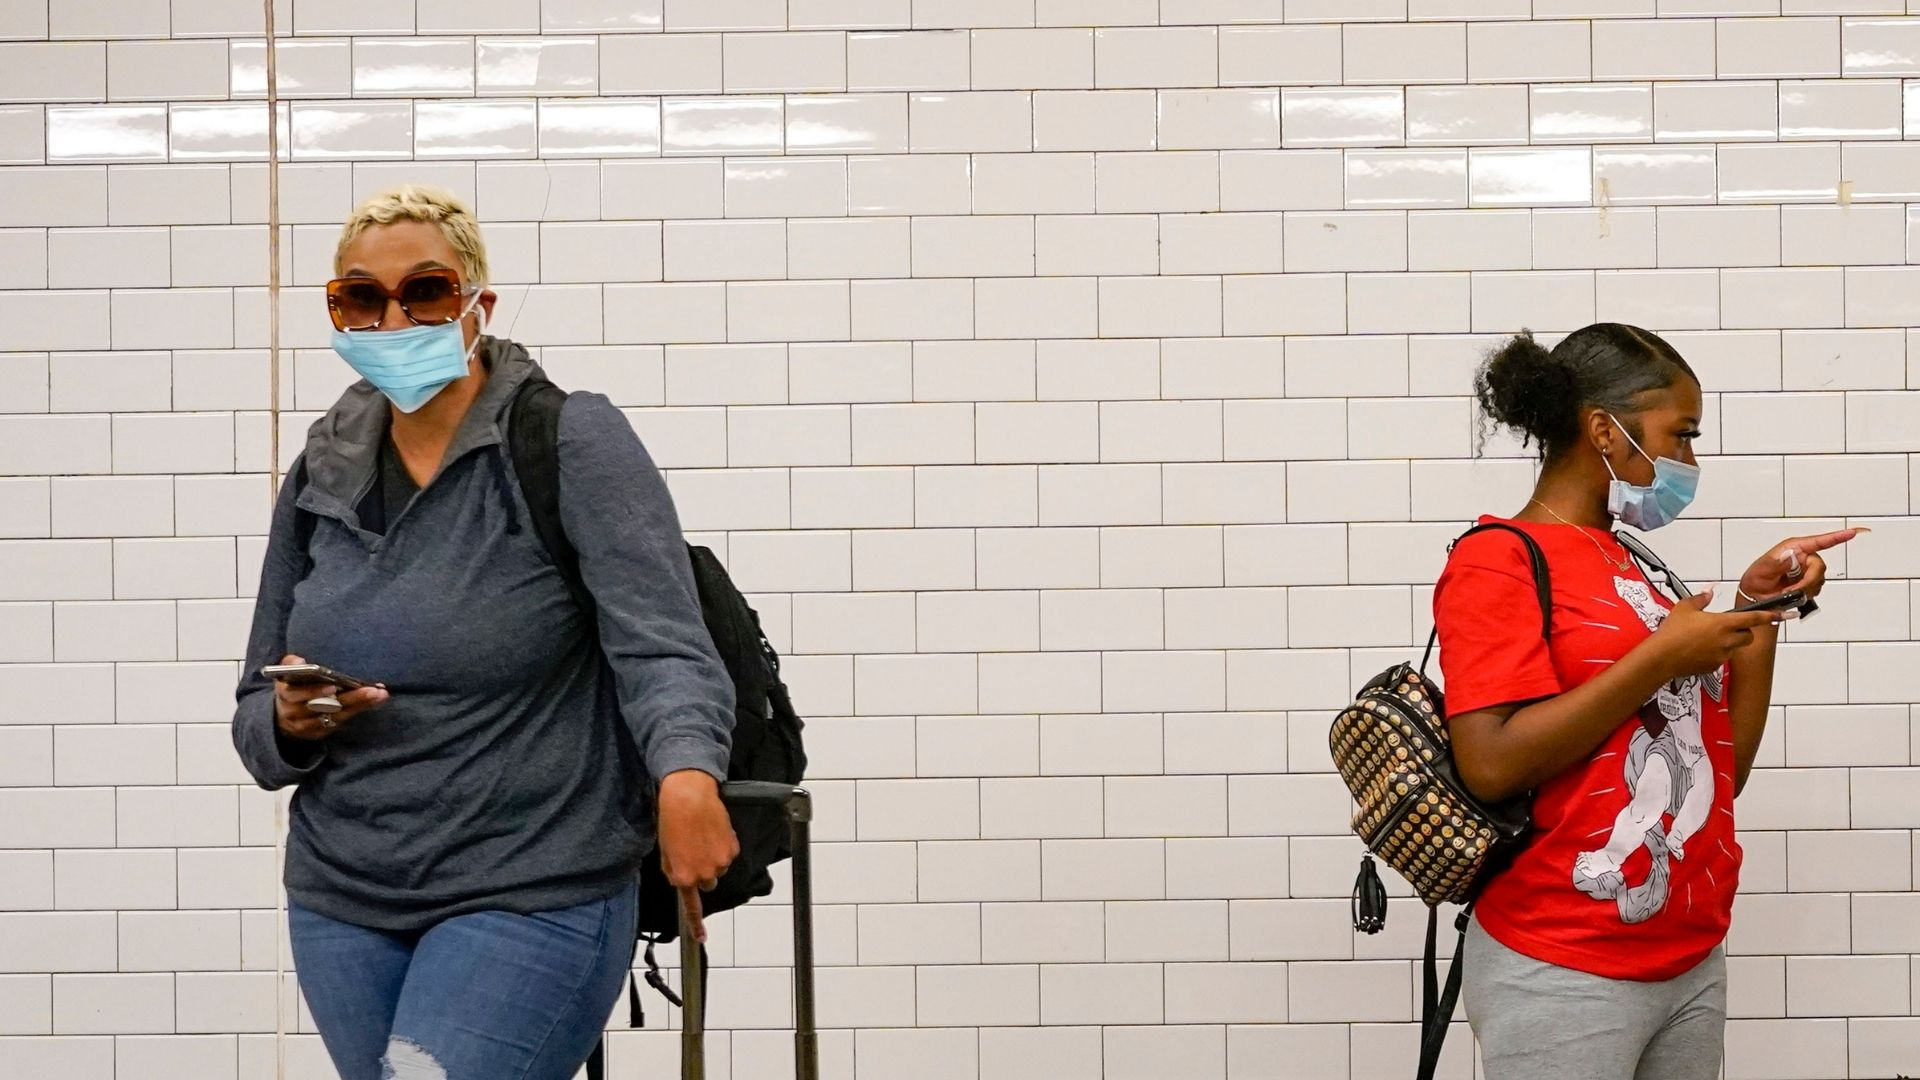 women-wear-masks-subway-station-nyc.jpg